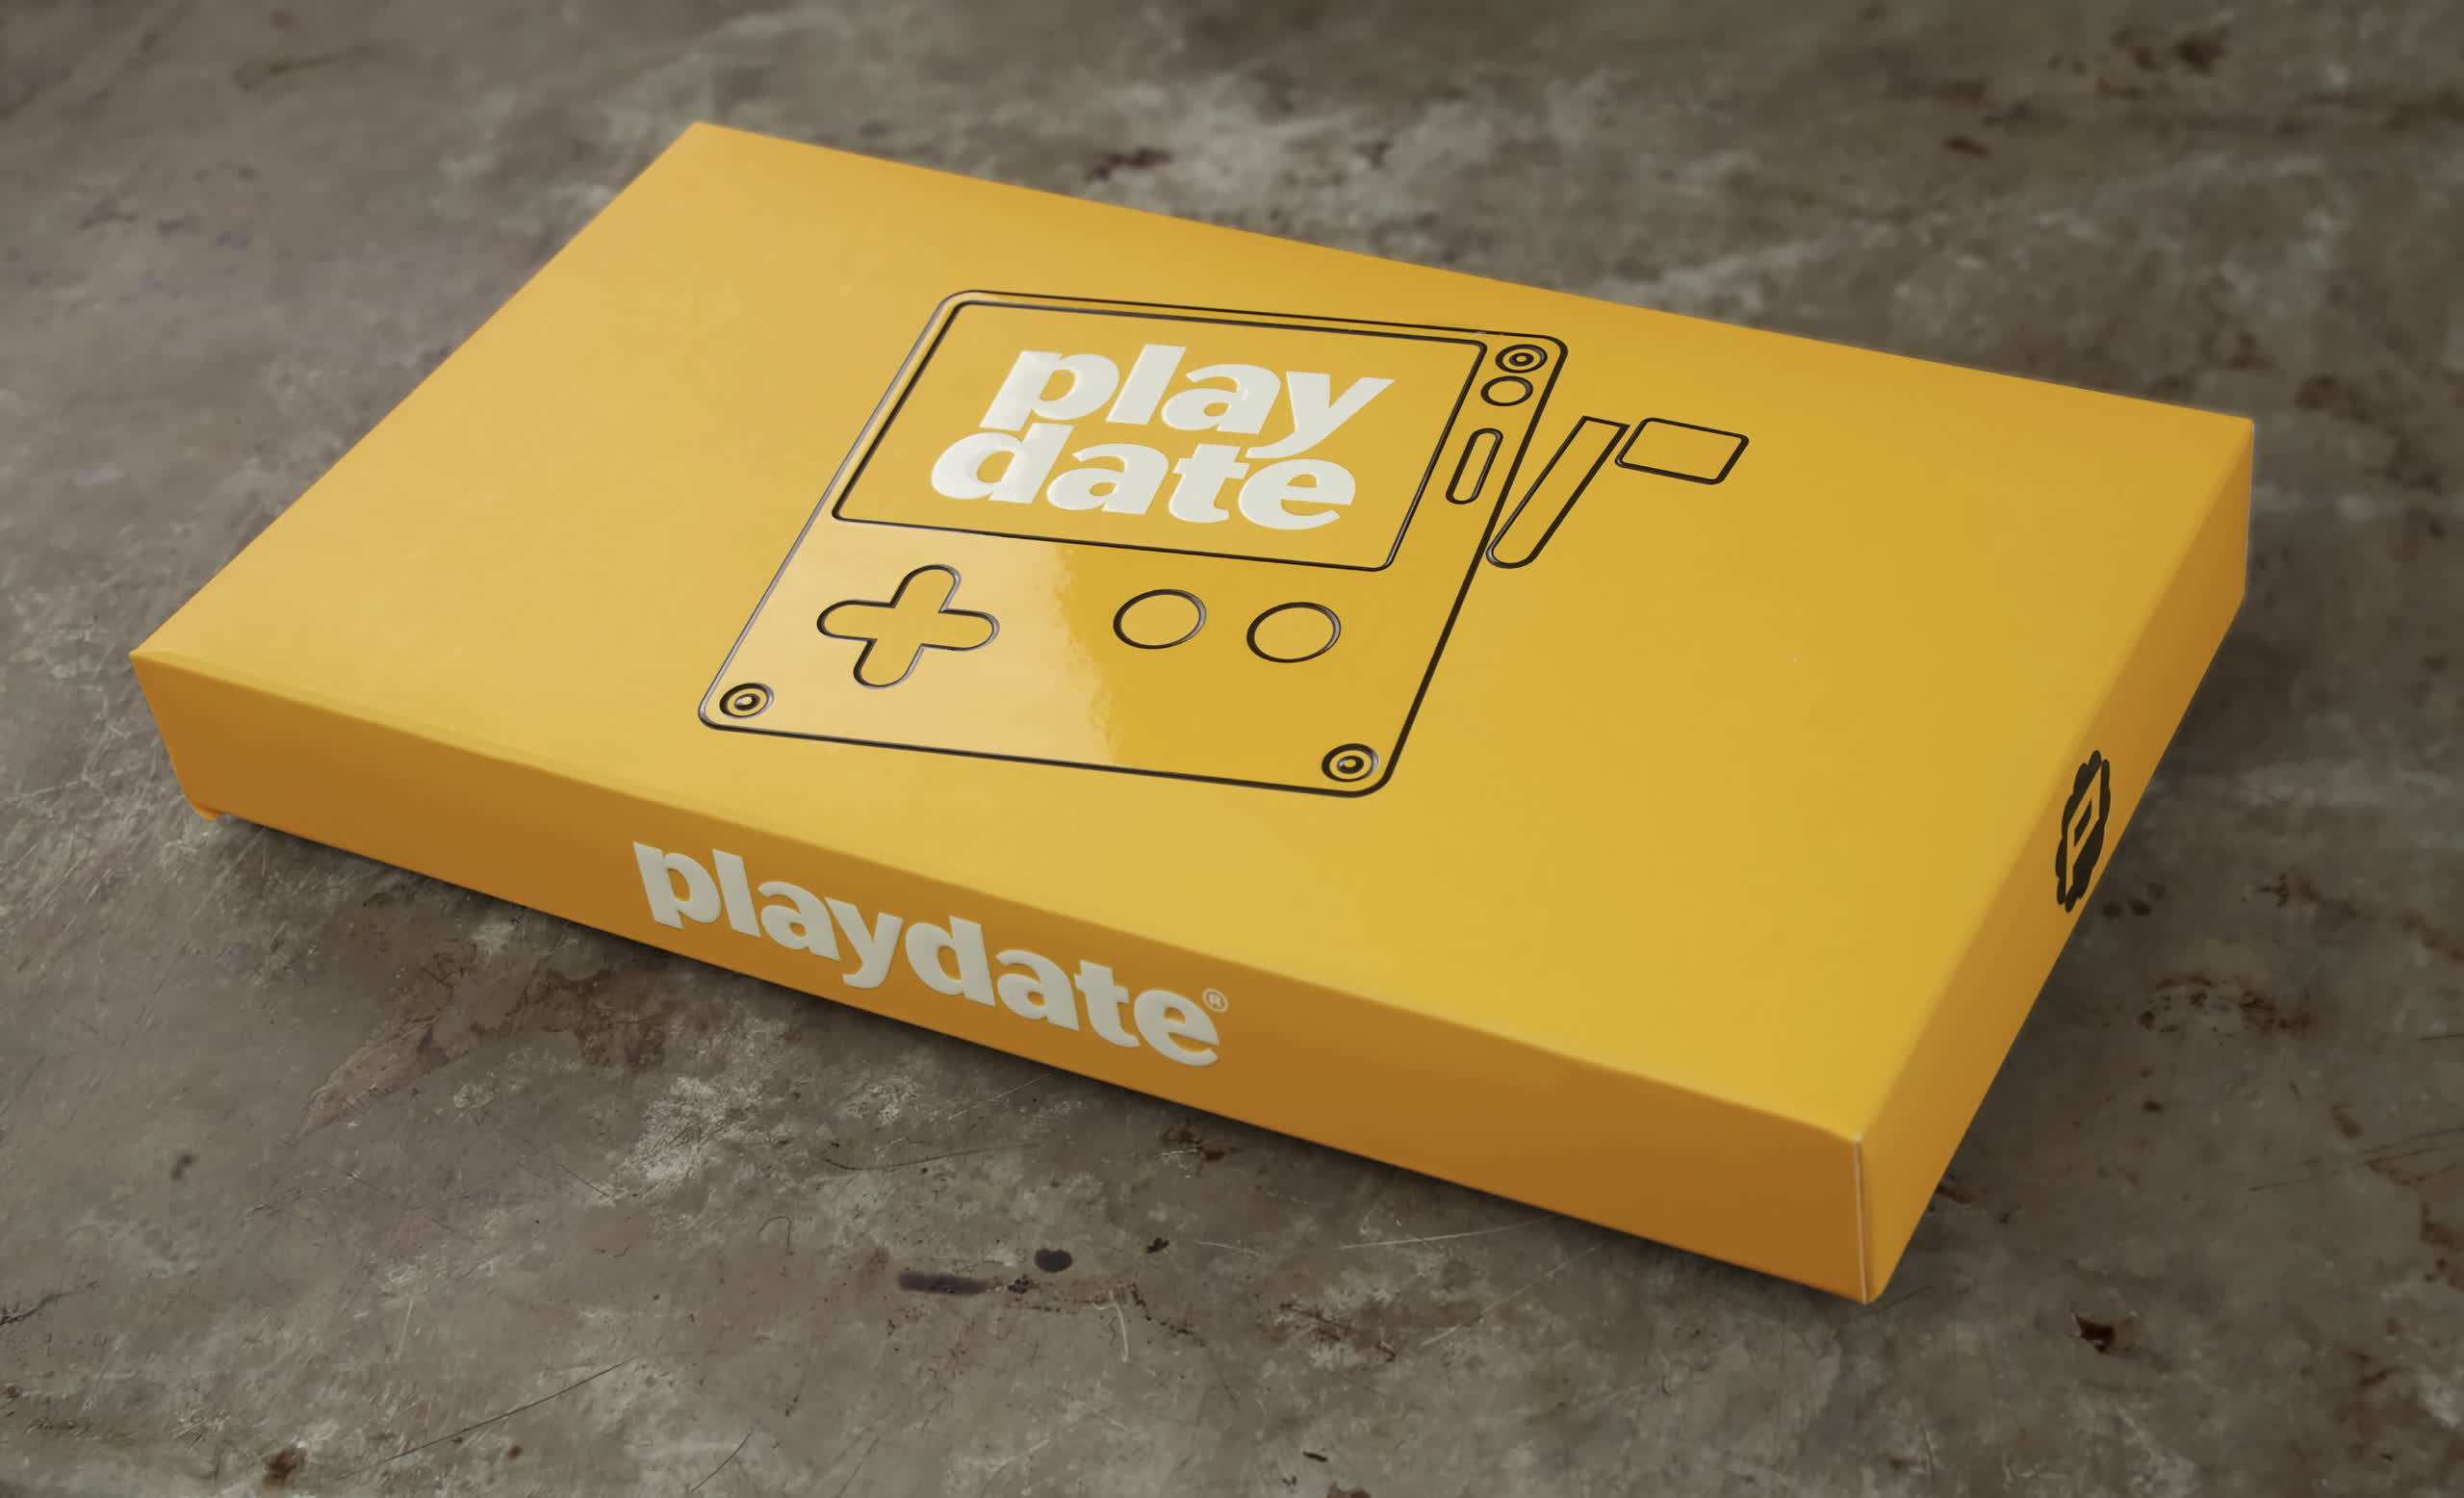 Playdate, the retro handheld with a crank, won't ship until 2021